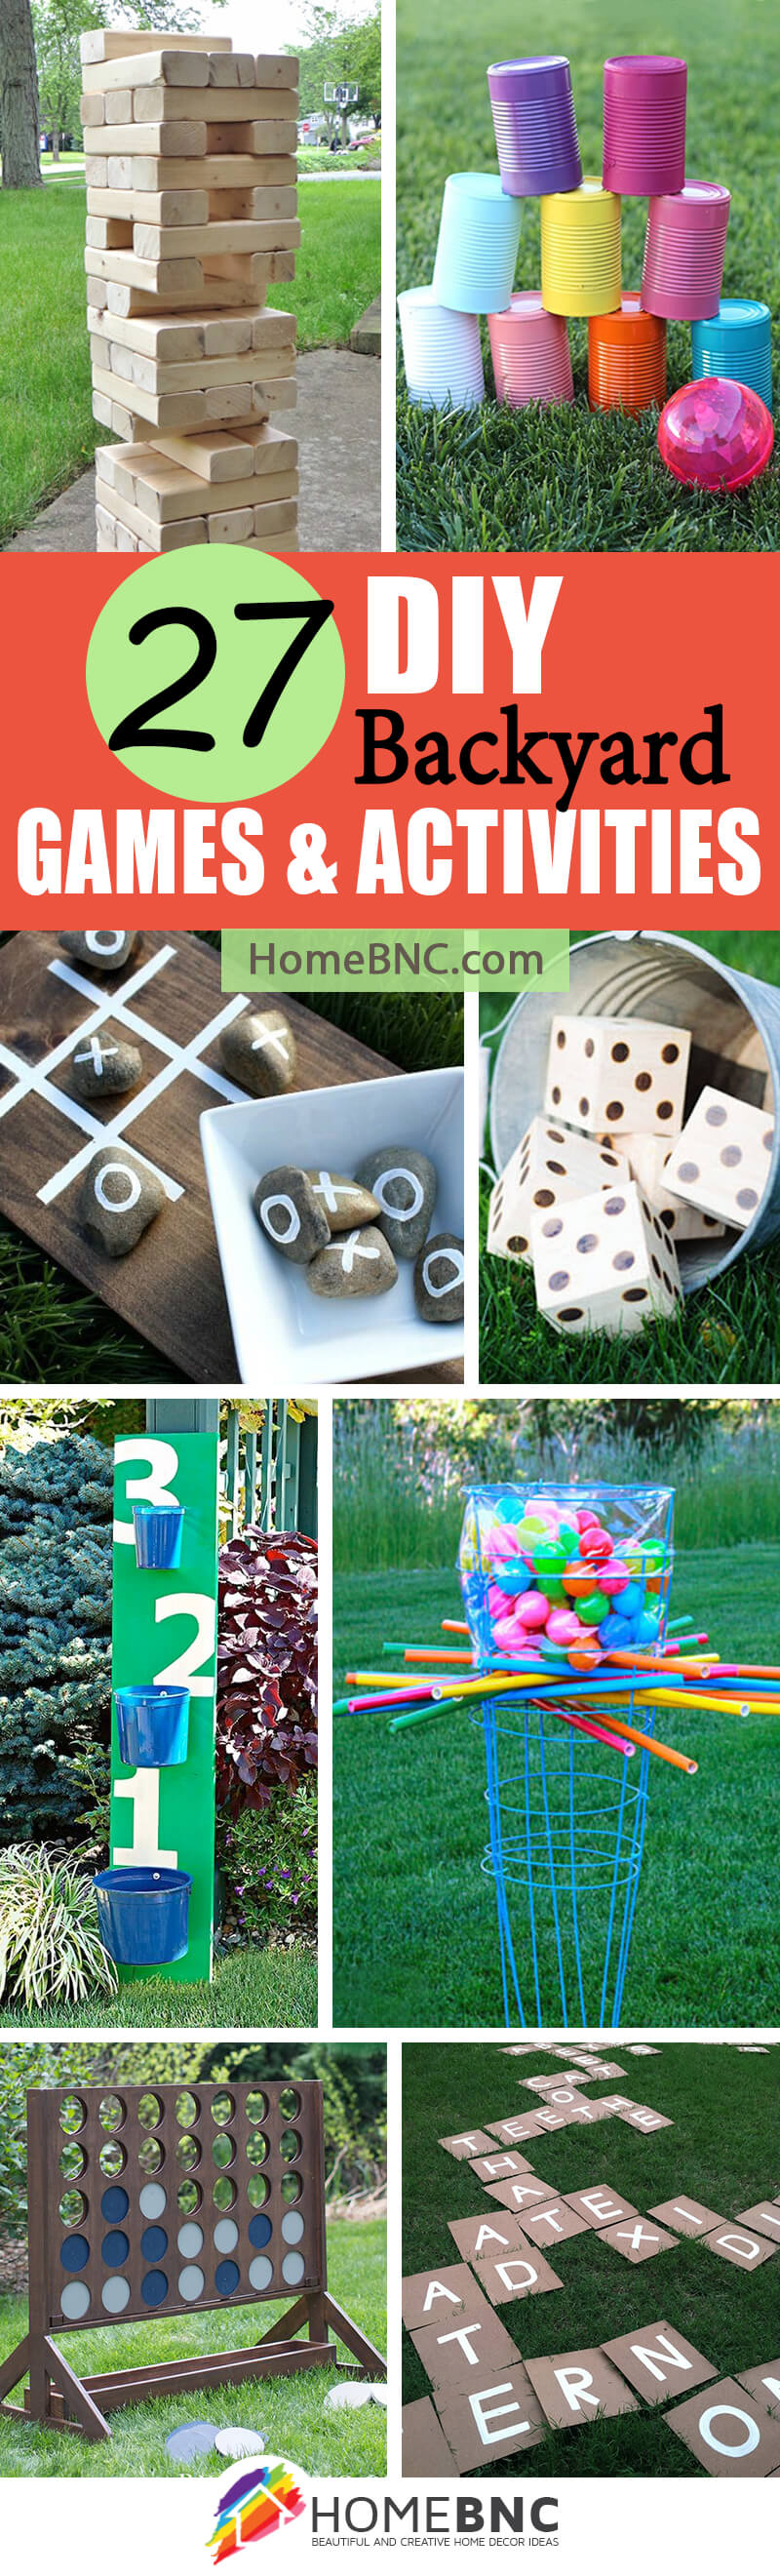 27 Best Diy Backyard Games Ideas And Designs For 2019 throughout 11 Clever Ways How to Makeover Backyard Game Ideas